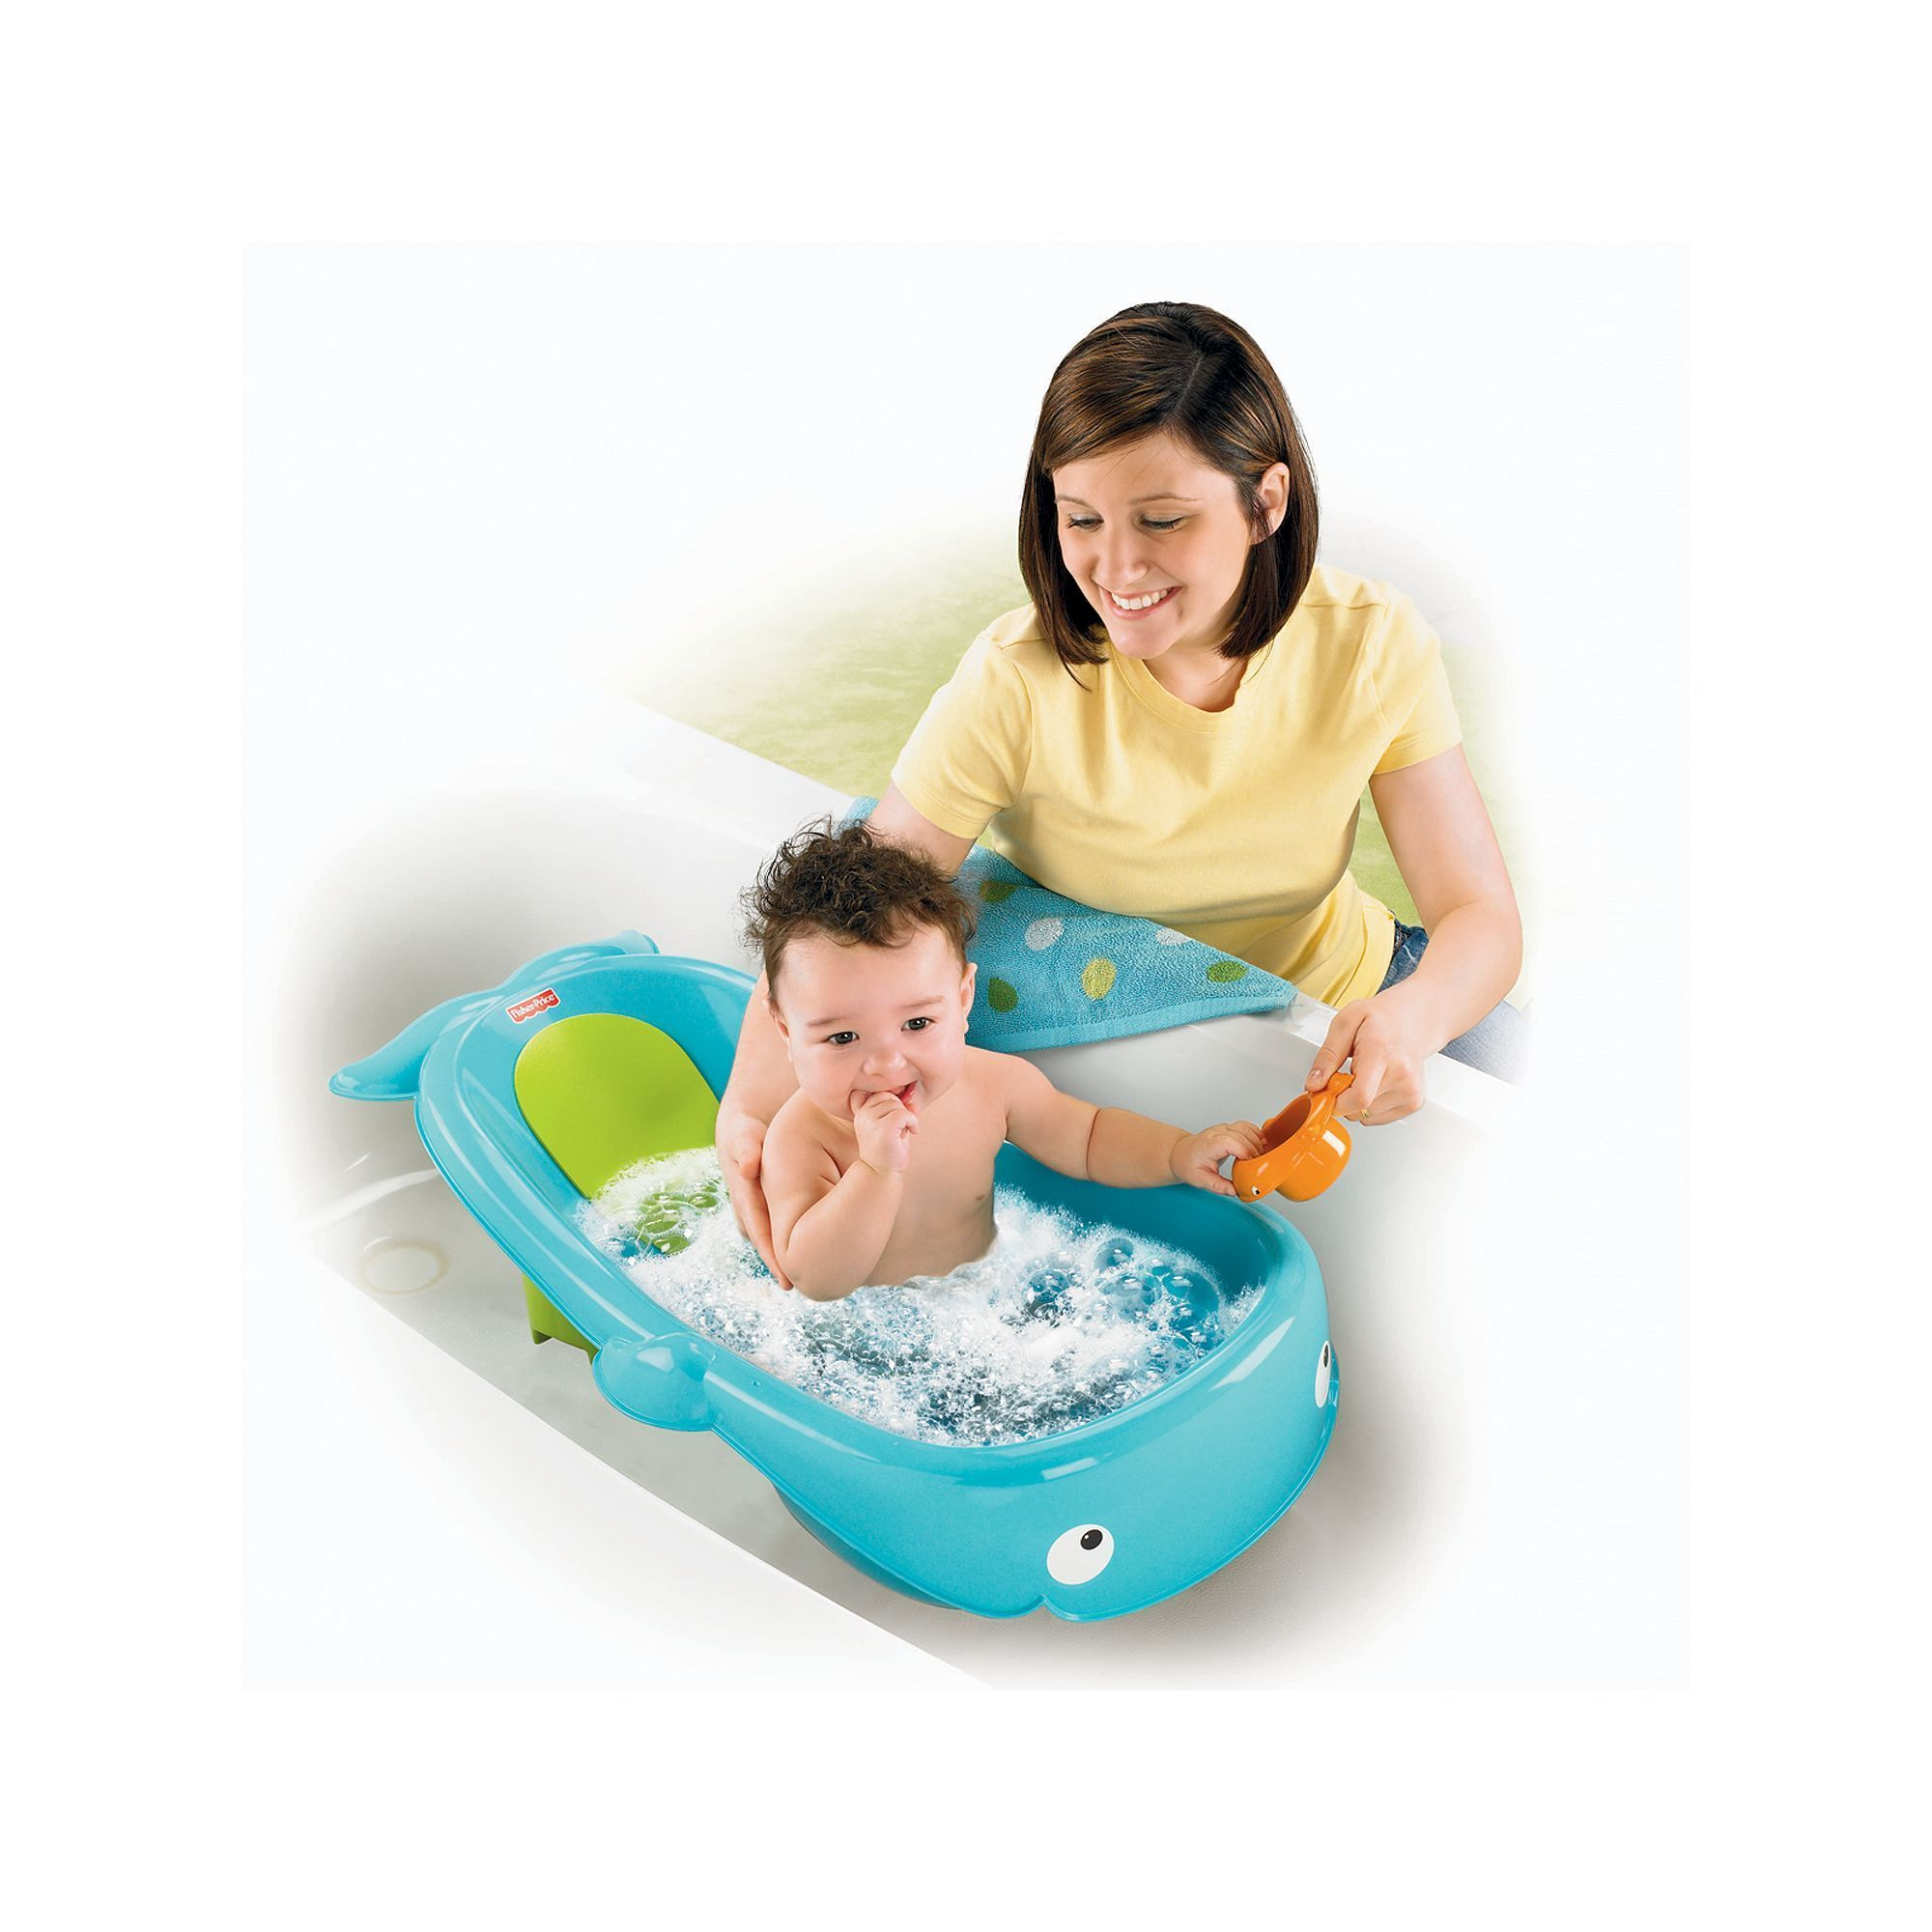 Fisher Price Whale Of A Tub Baby Tub Baby Bath Time Tub